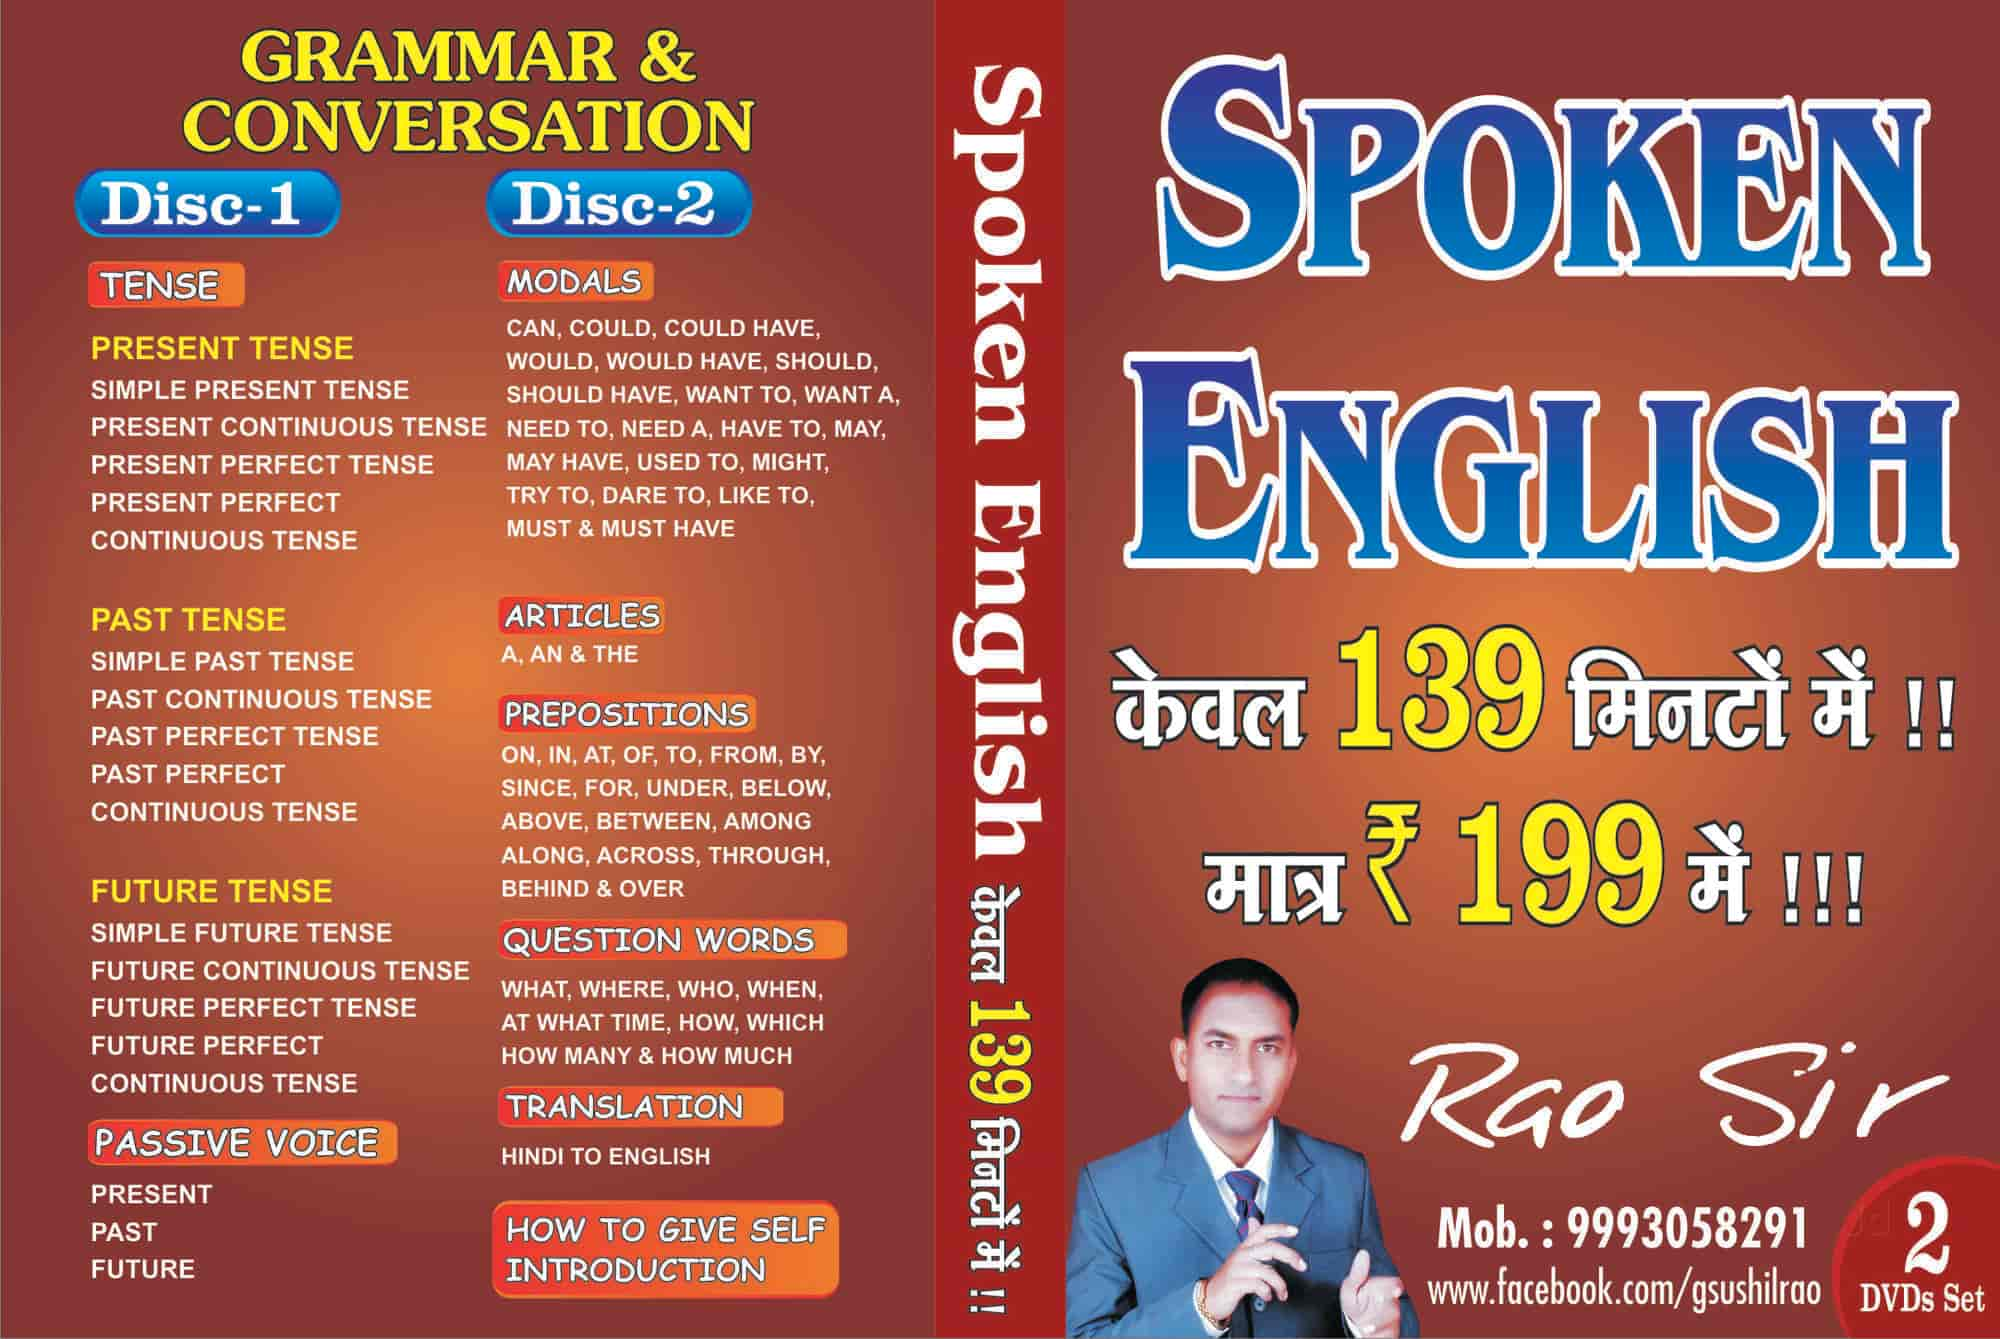 - Rao Sir Academy Images, Raipur Ganj, Raipur-Chhattisgarh - Language Classes For English